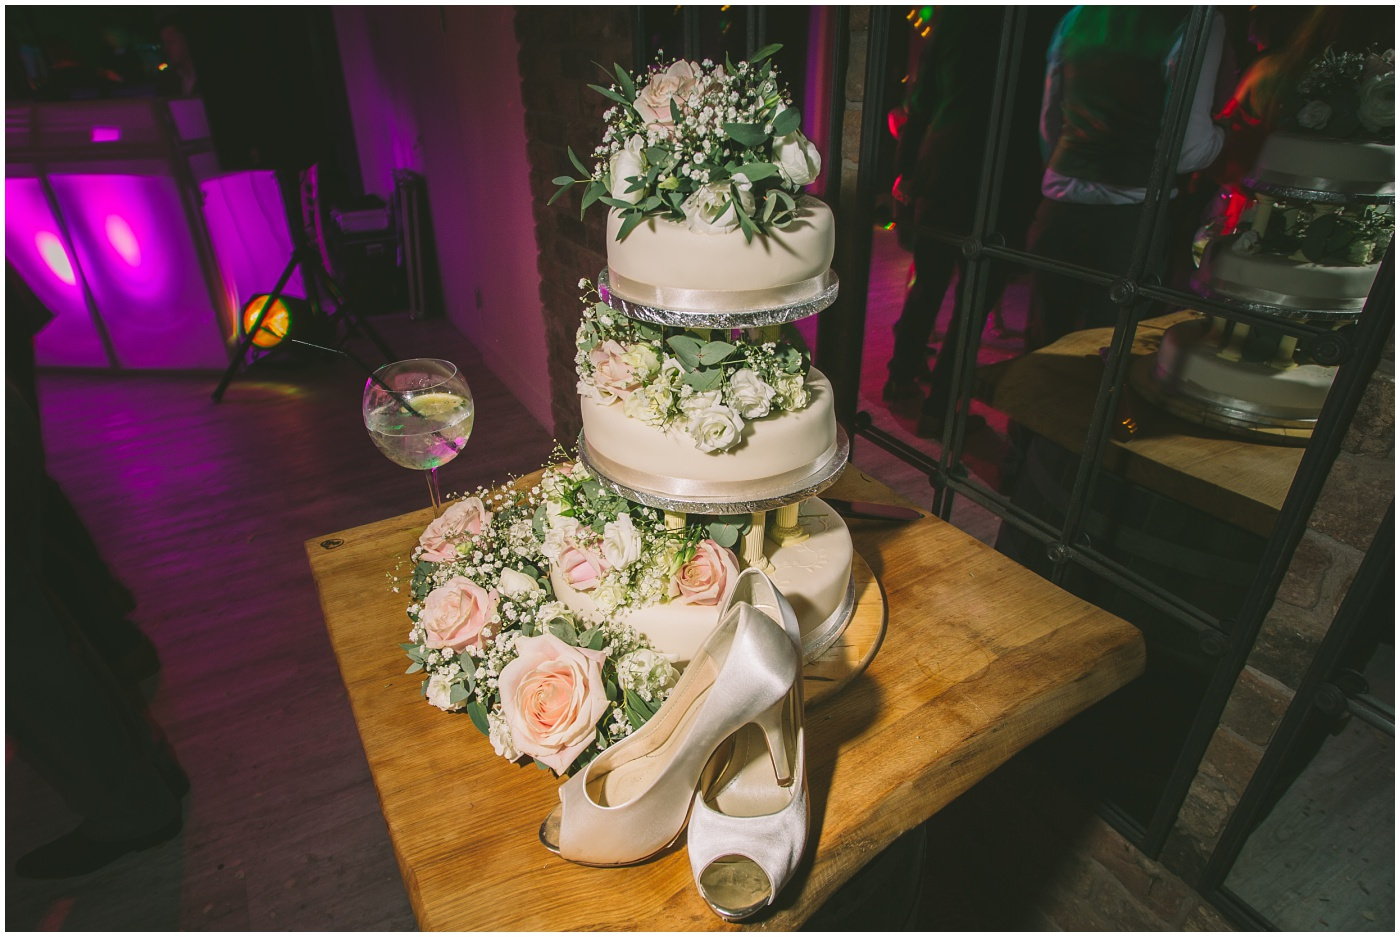 Cake and brides shoes on display at Pryors Hayes